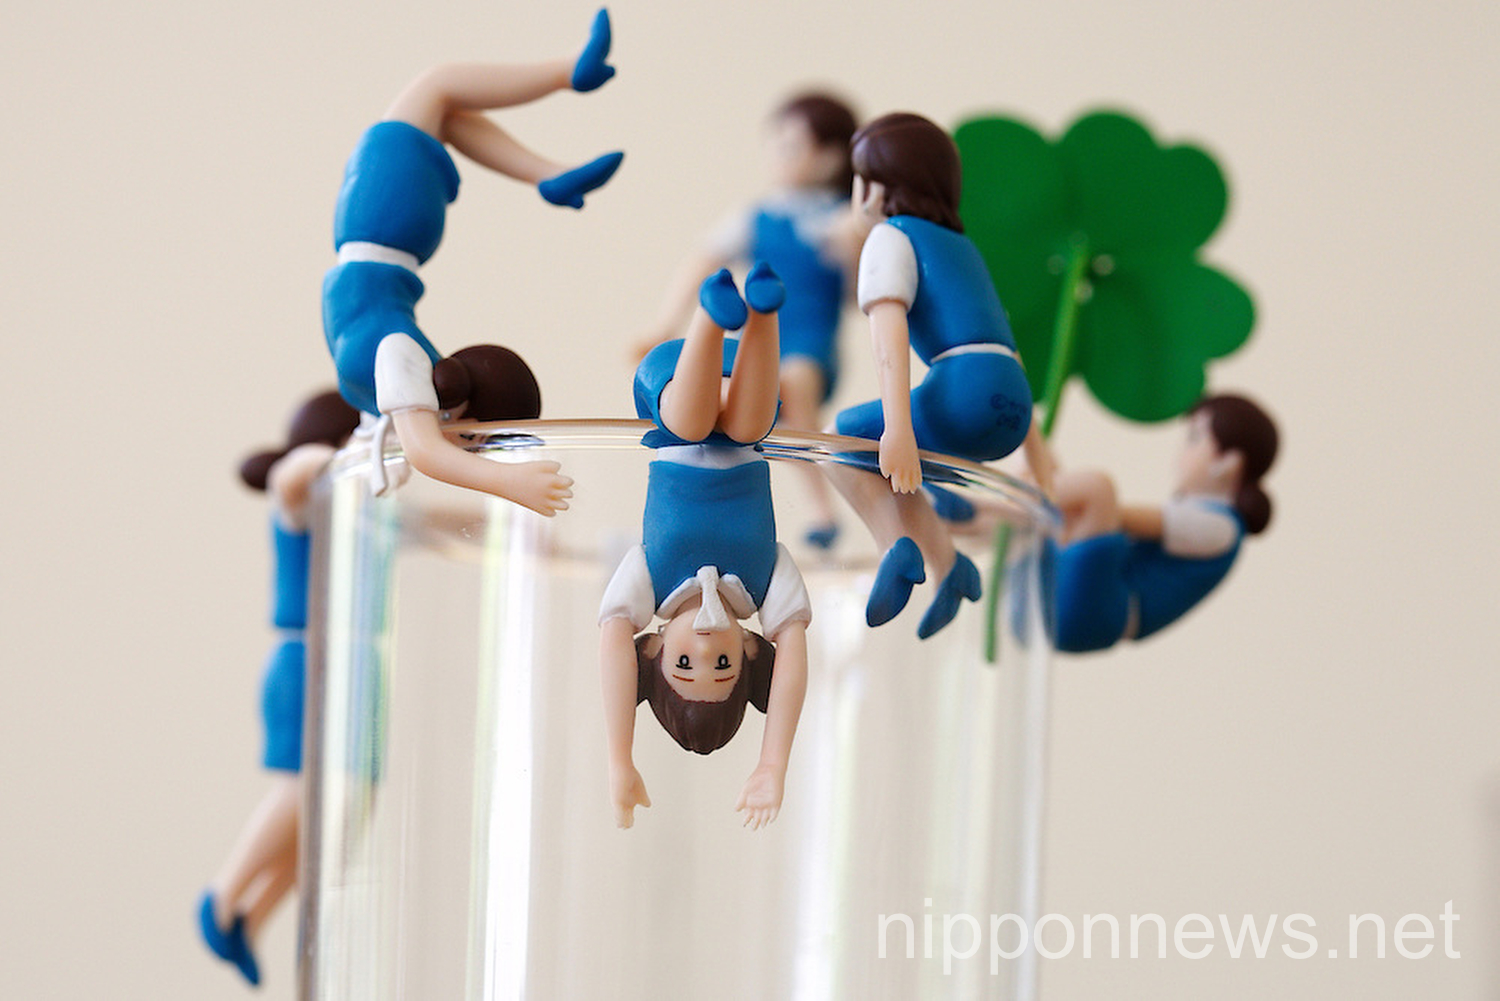 Japanese Trends – Office Ladies Perching on your DrinkJapanese Trends – Office Ladies Perching on your DrinkJapanese Trends – Office Ladies Perching on your DrinkJapanese Trends – Office Ladies Perching on your DrinkJapanese Trends – Office Ladies Perching on your Drink